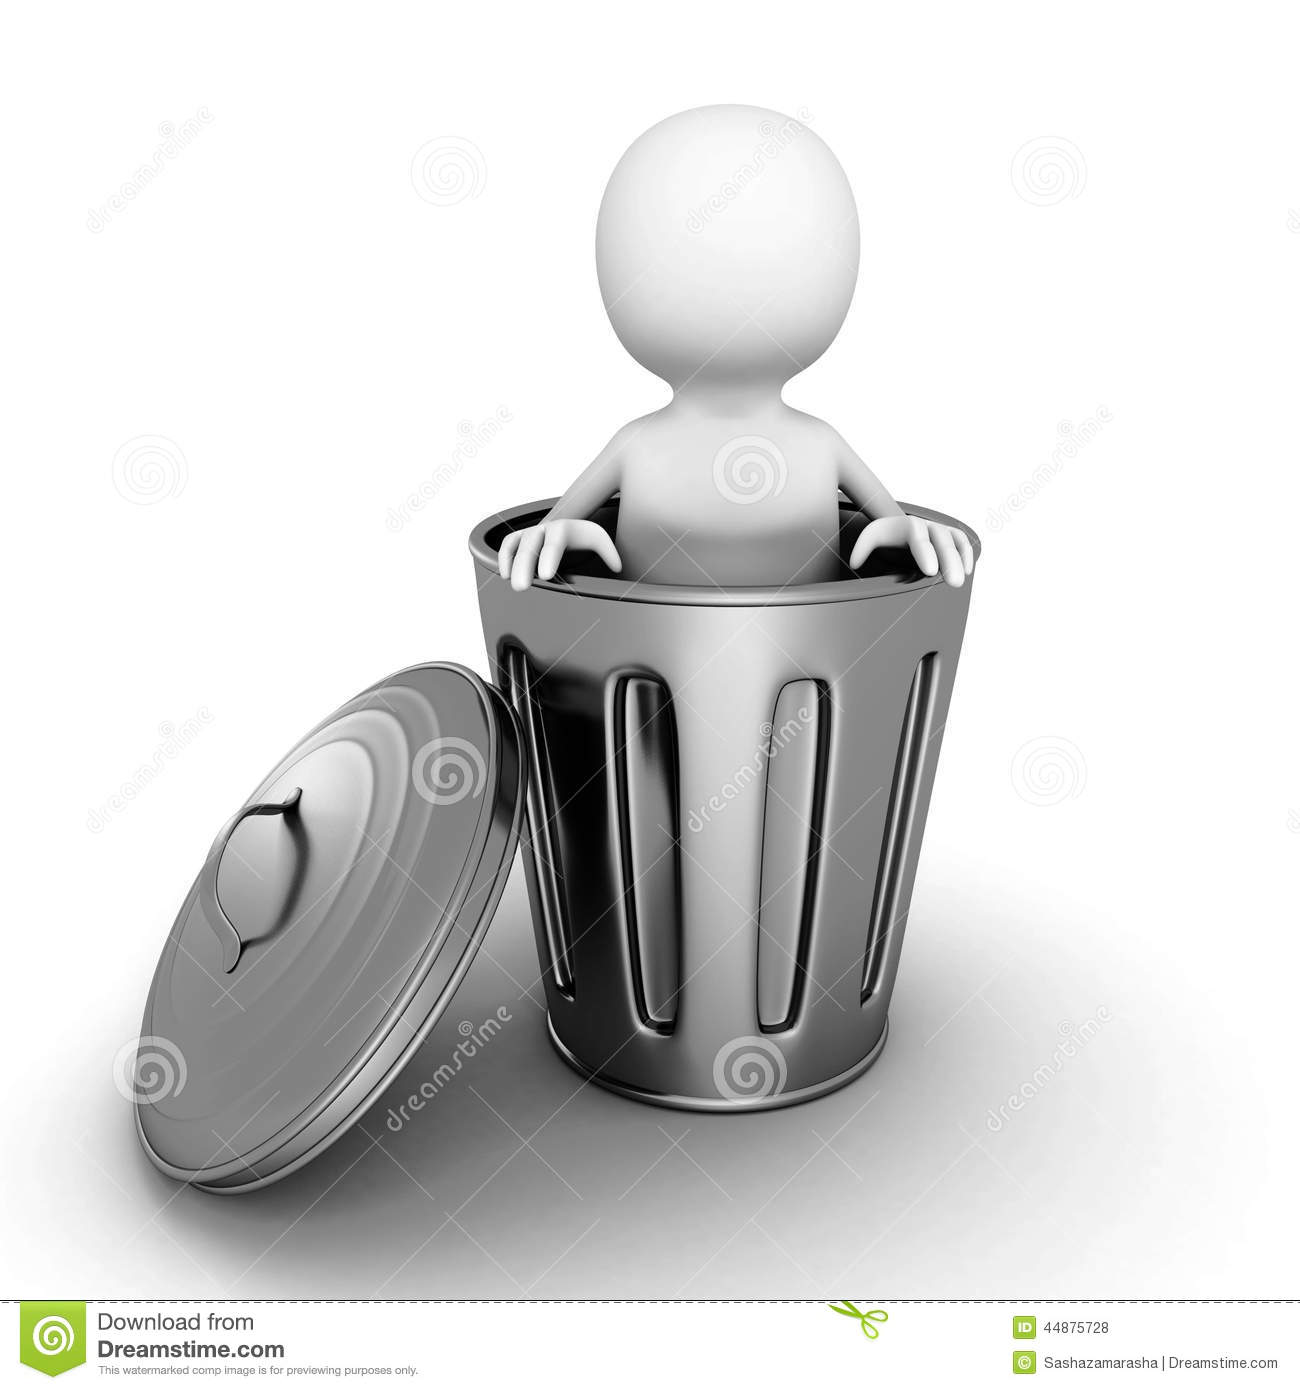 d-small-person-metallic-trash-can-render-illustration-44875728